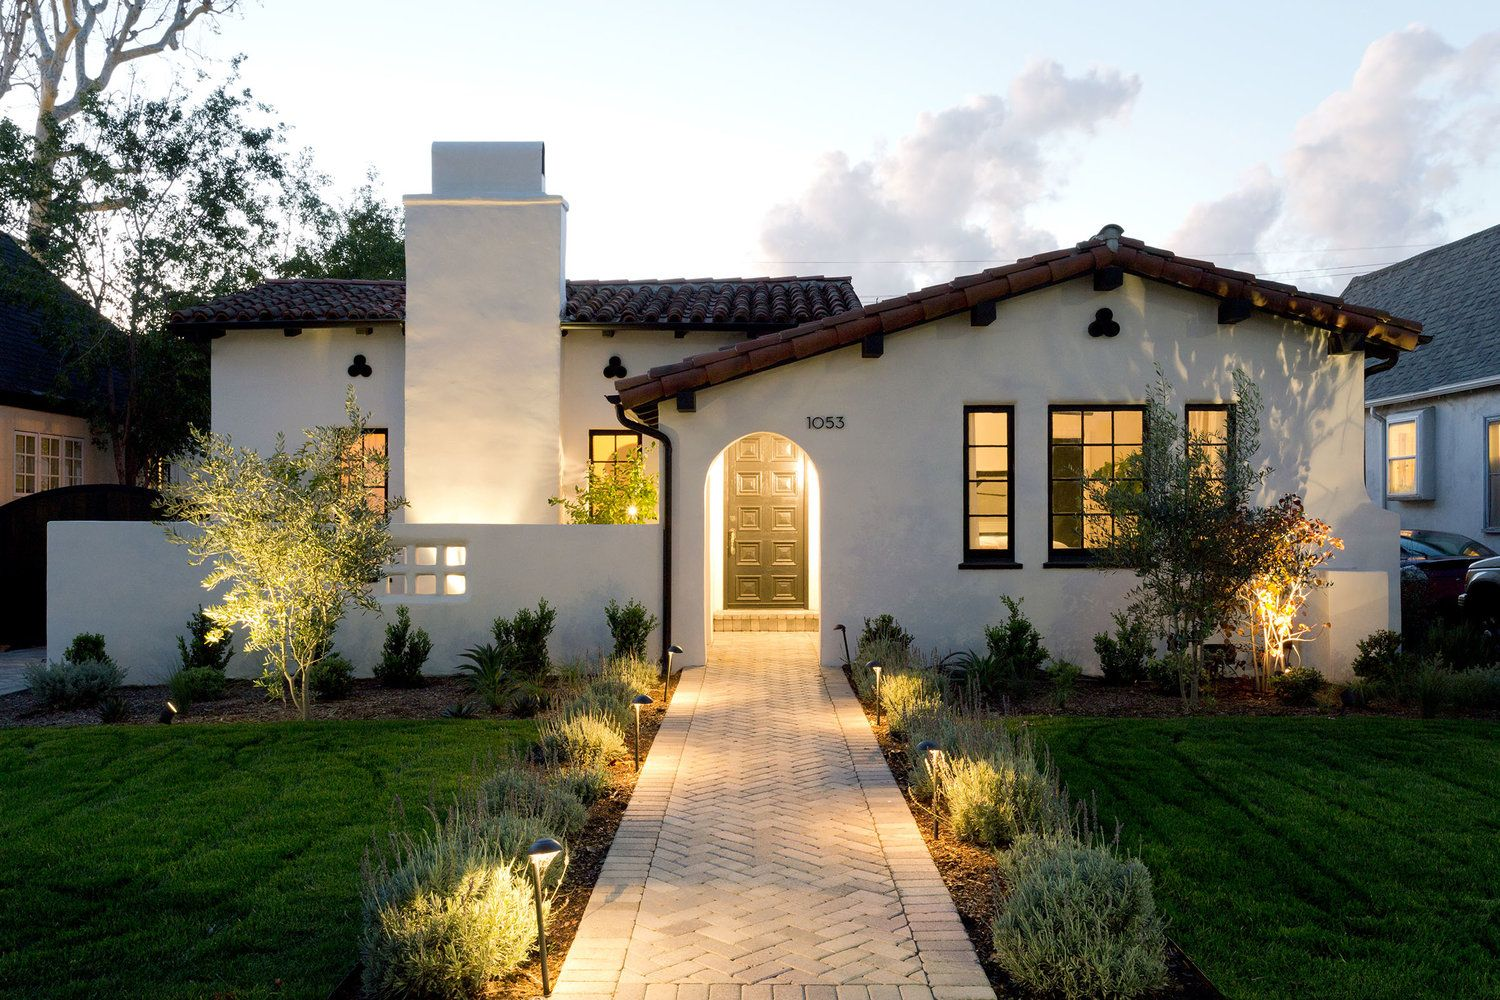 Home Designed By The Talented Team Of JETTE, Approaches Spanish Style With  A Mixture Of Glamour, Chic, And Sophistication. This Charming Spanish Style  Home ...